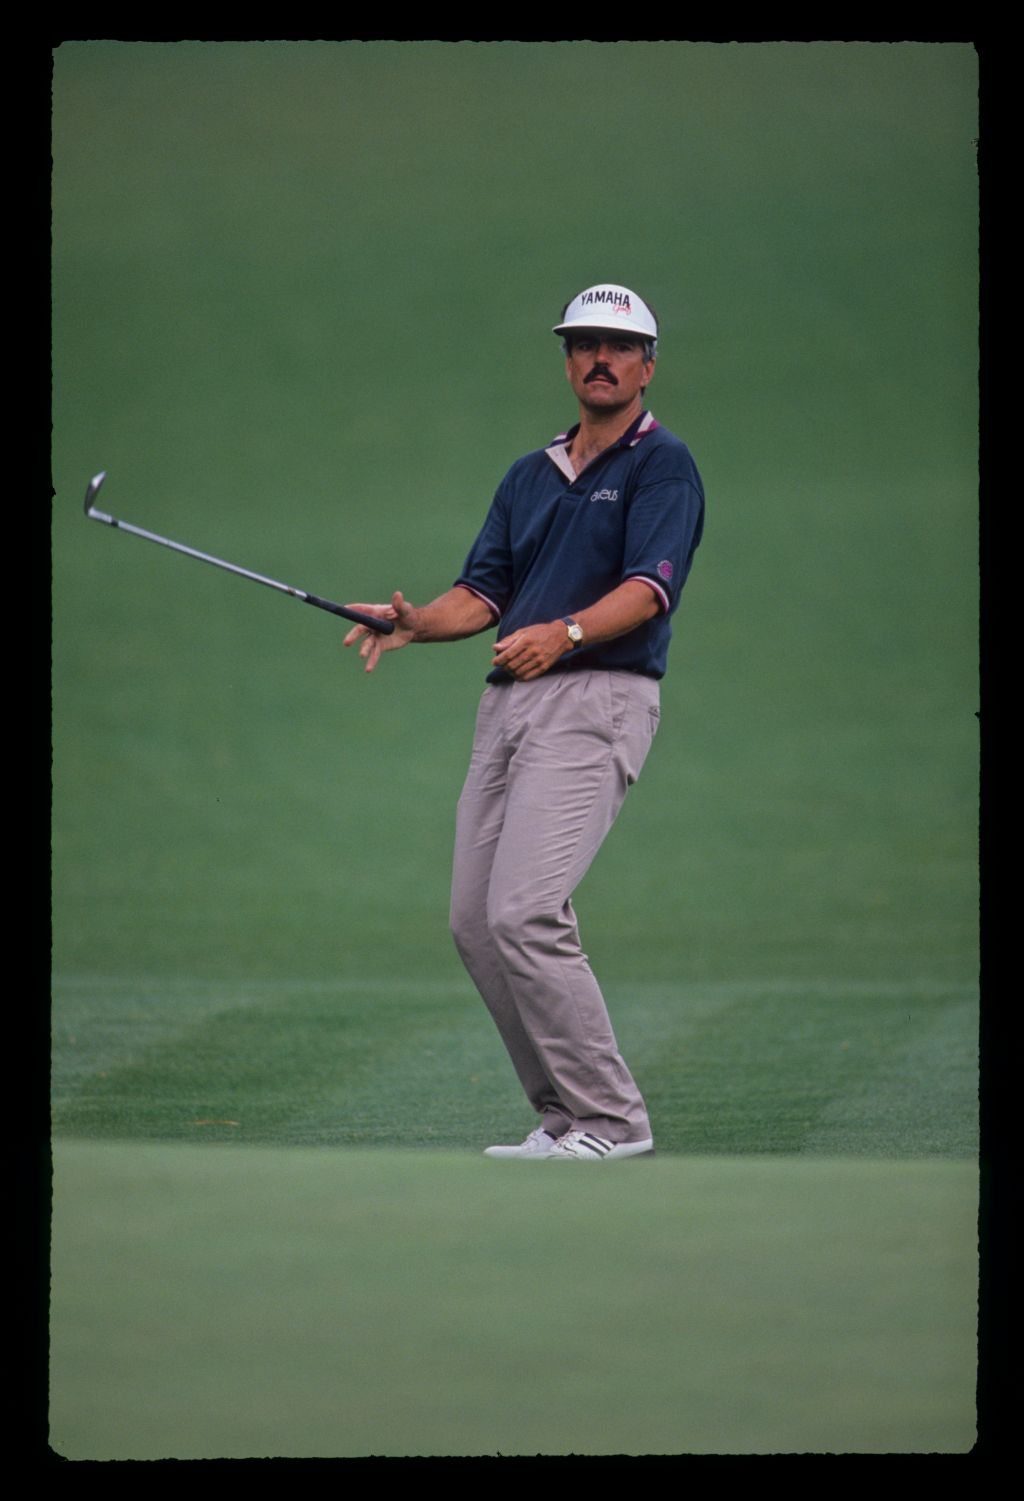 Scott Simpson dropping his wedge after chipping to the green during the 1991 Masters